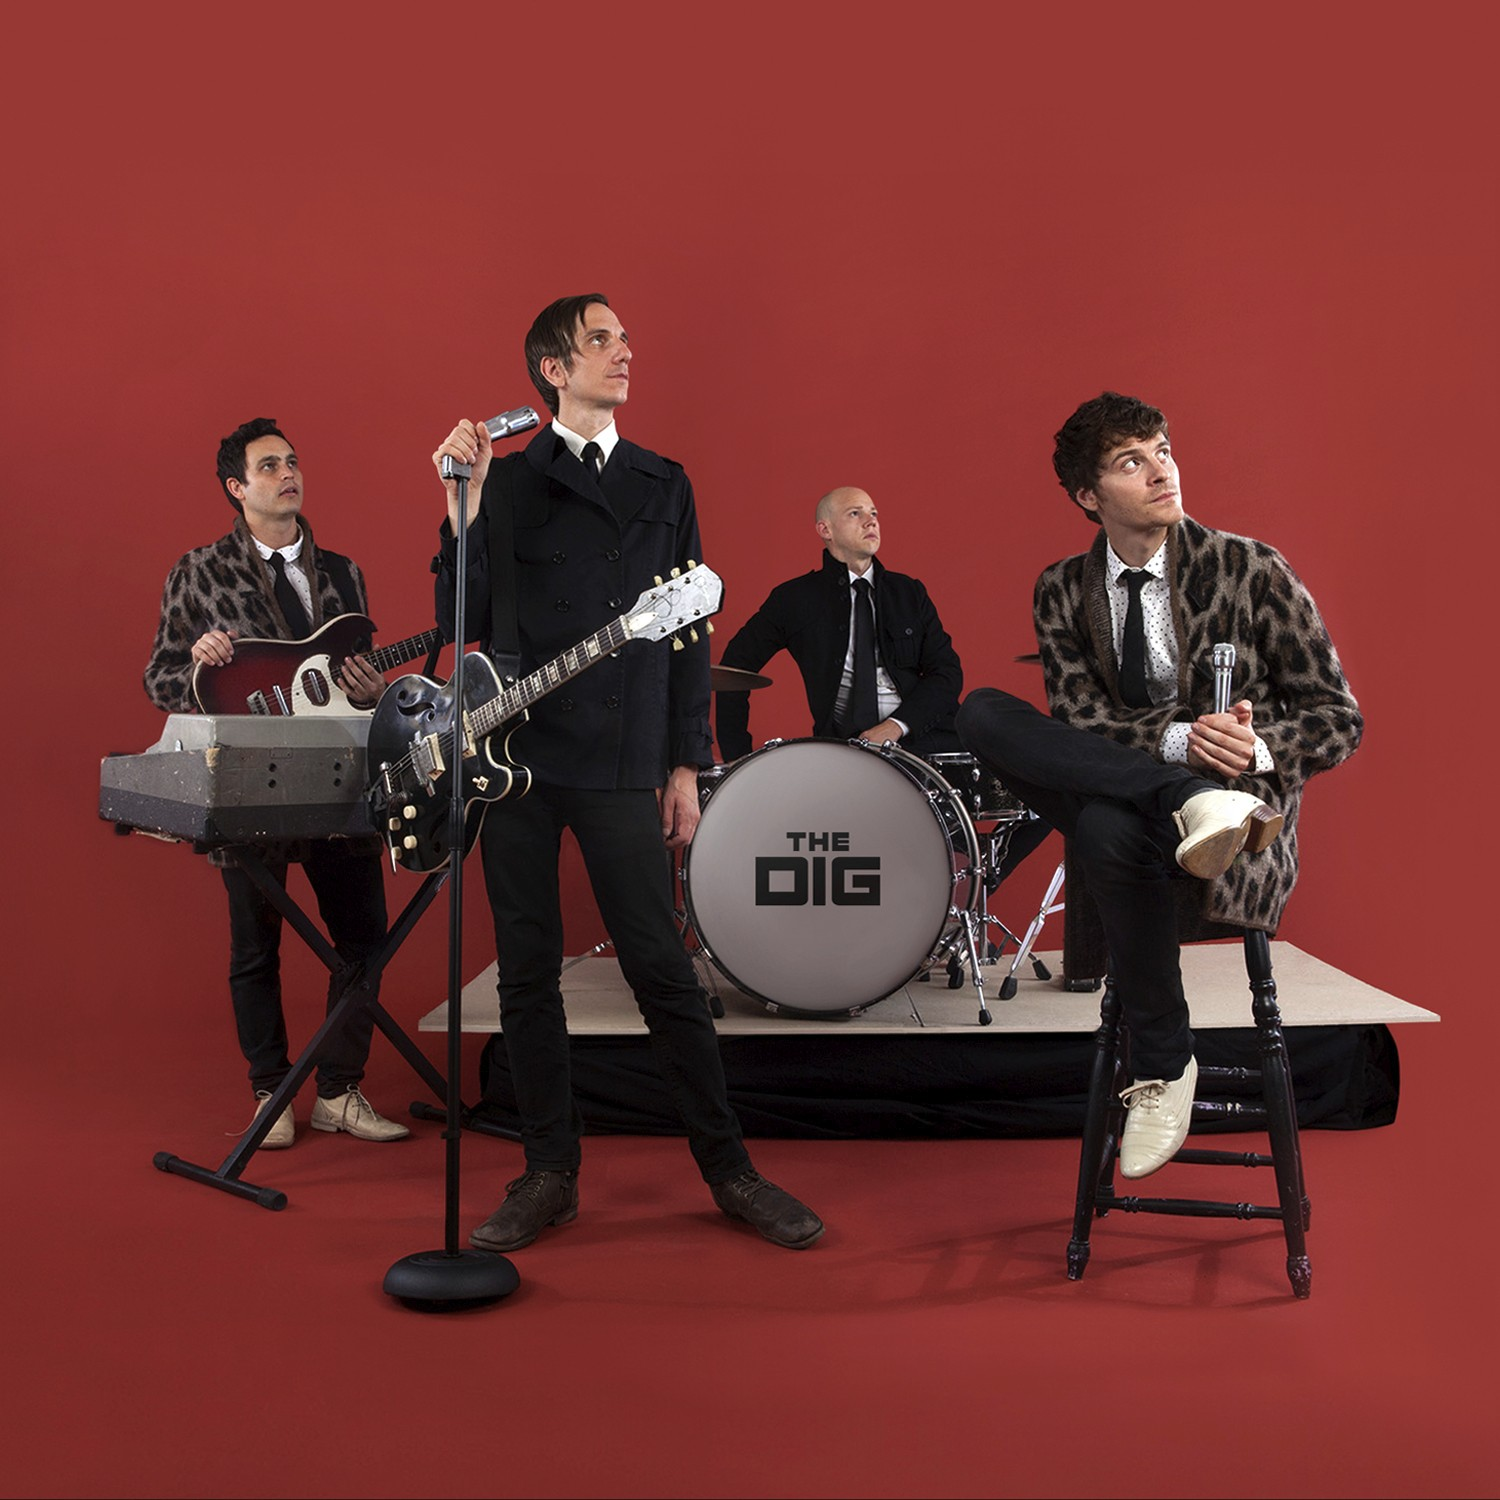 The Dig - Band Promo